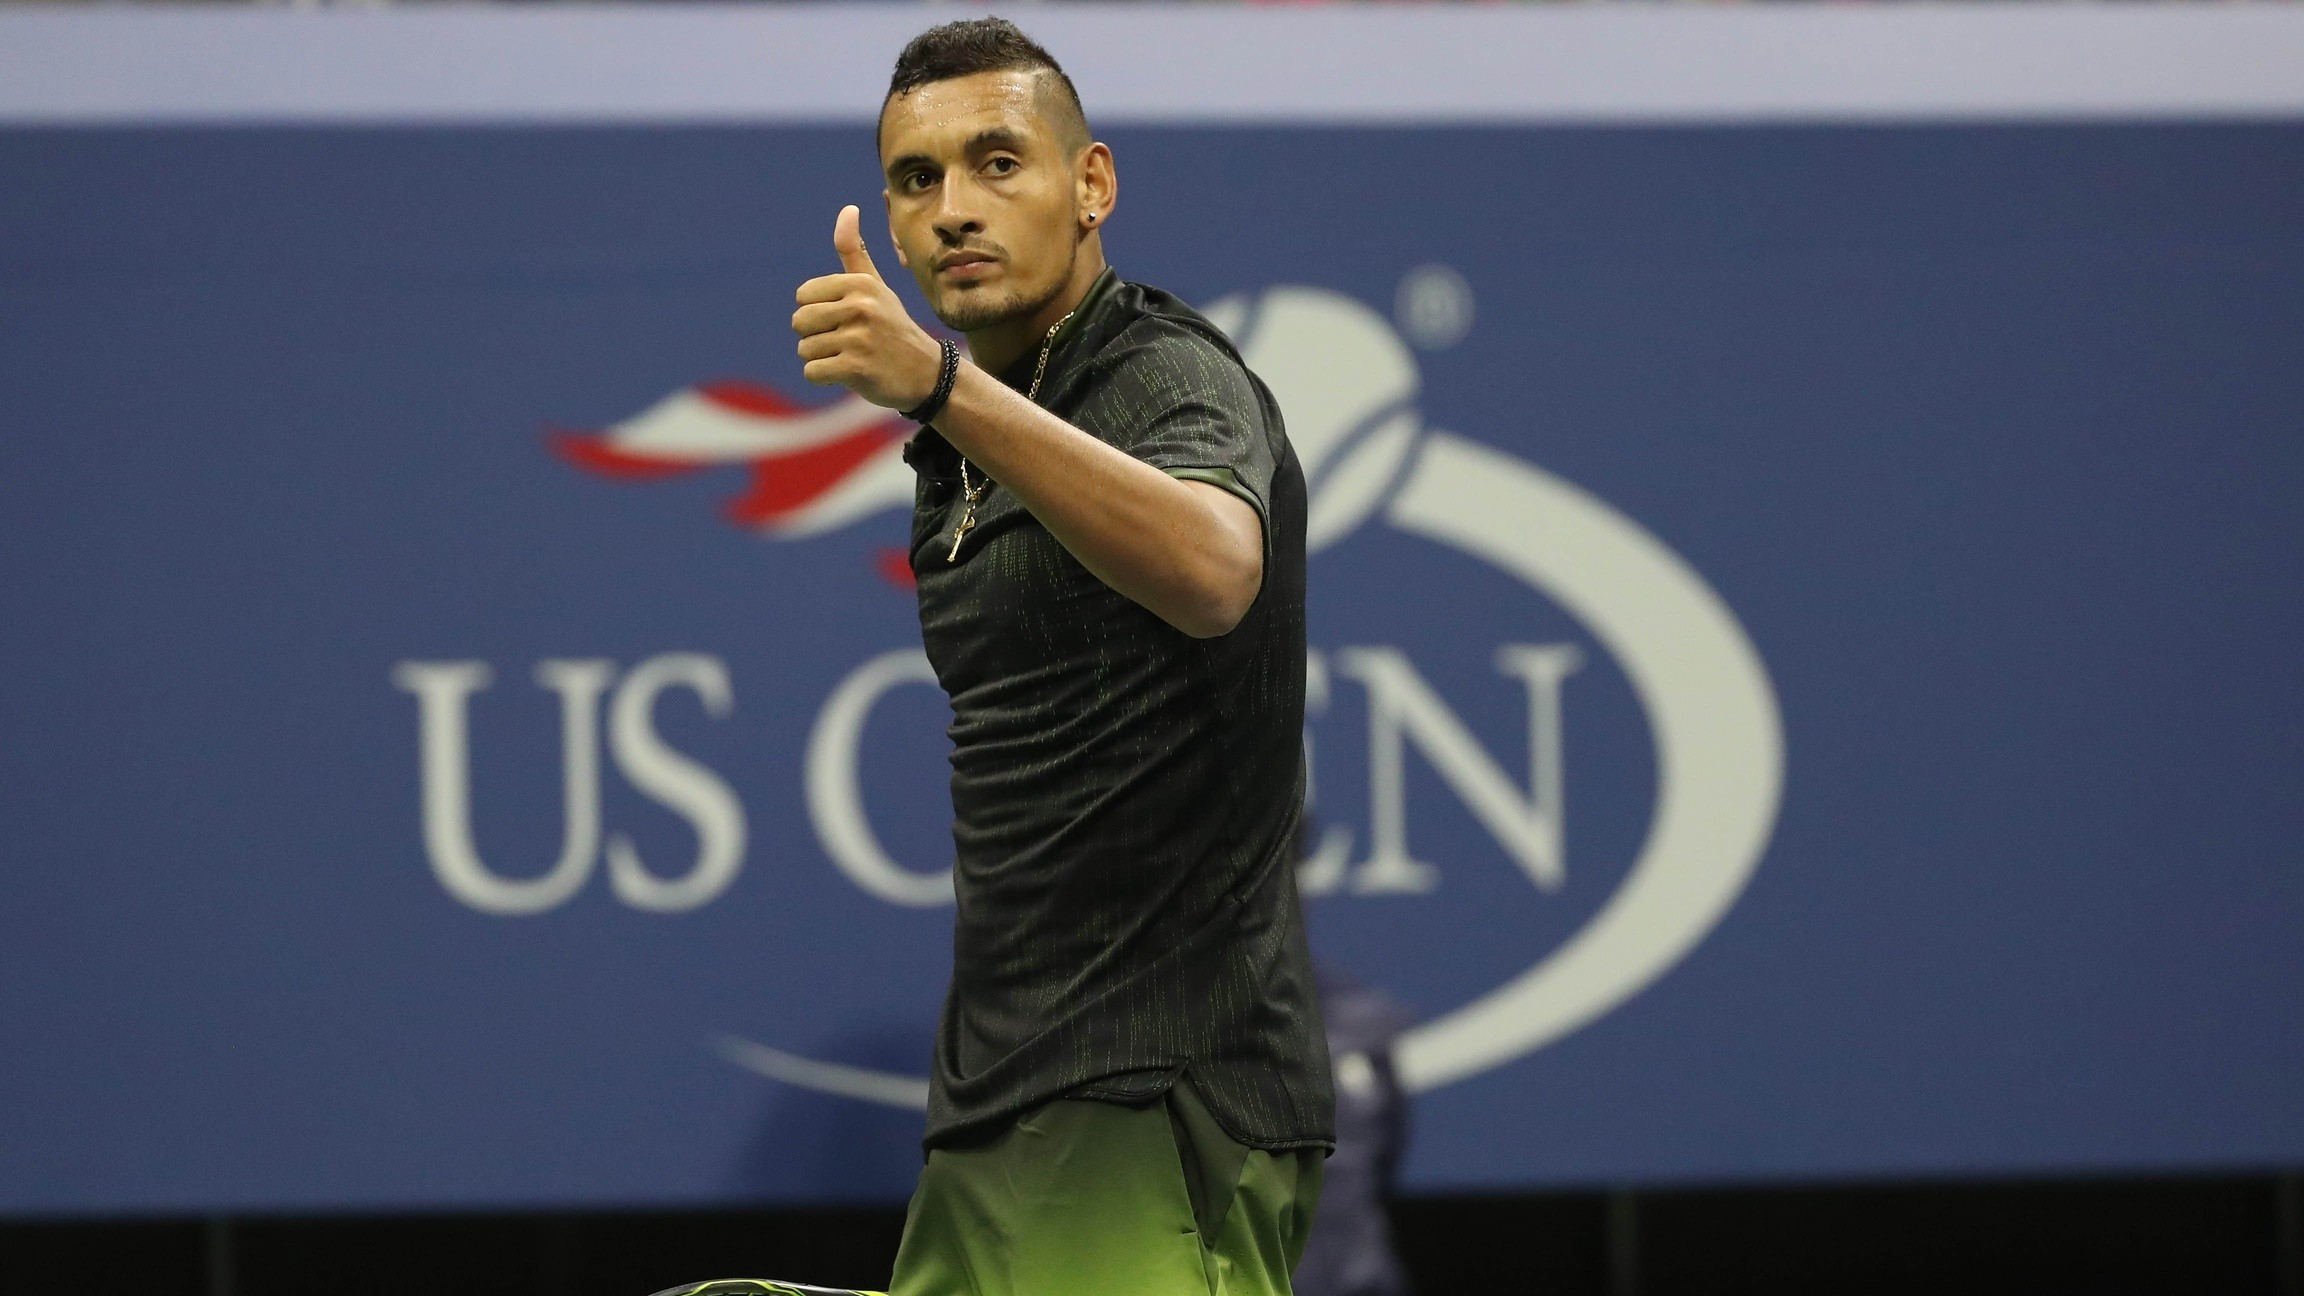 Nick Kyrgios Booed by Fellow Aussies During Melt Down at the Australian Open